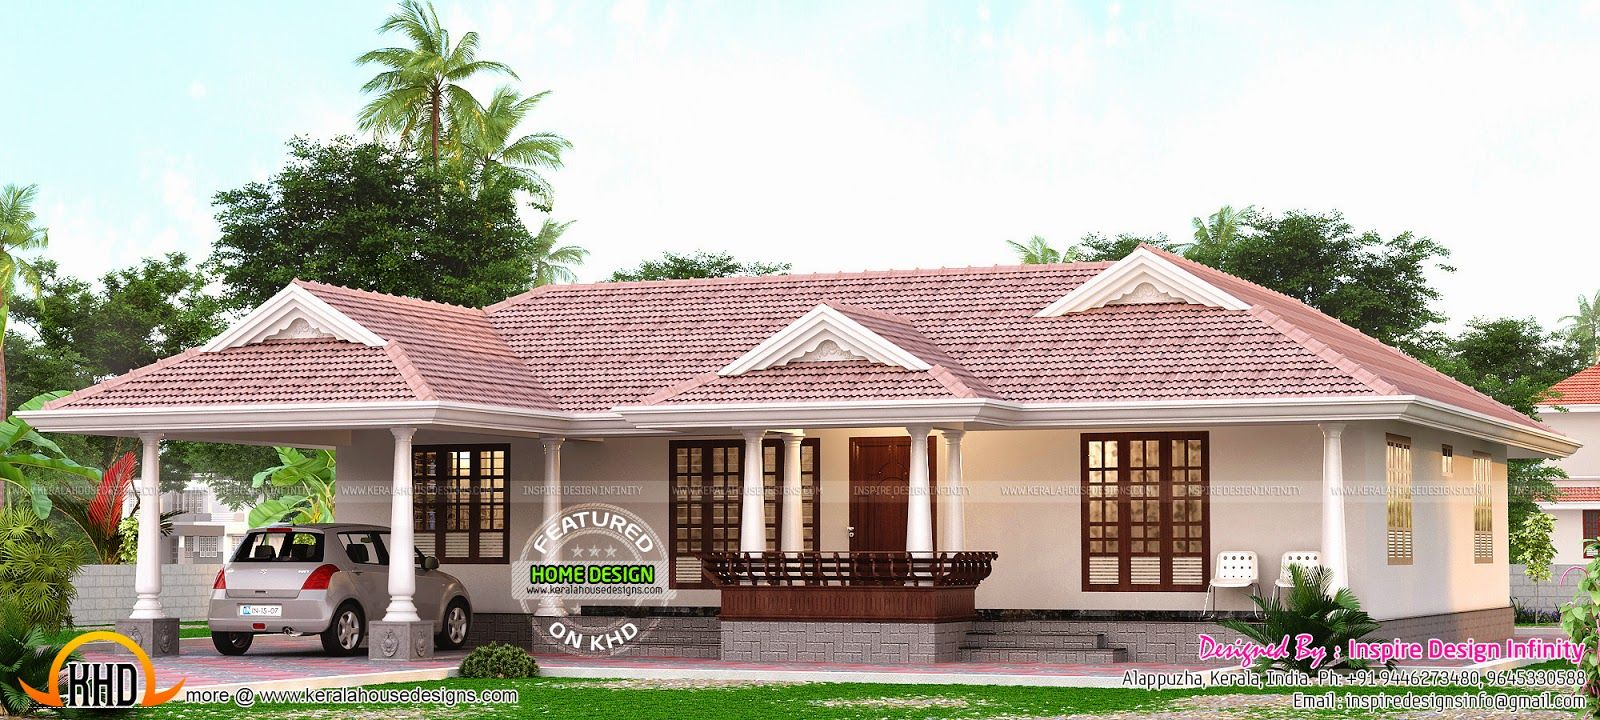 traditional chettinad home plans Google Search Home decor